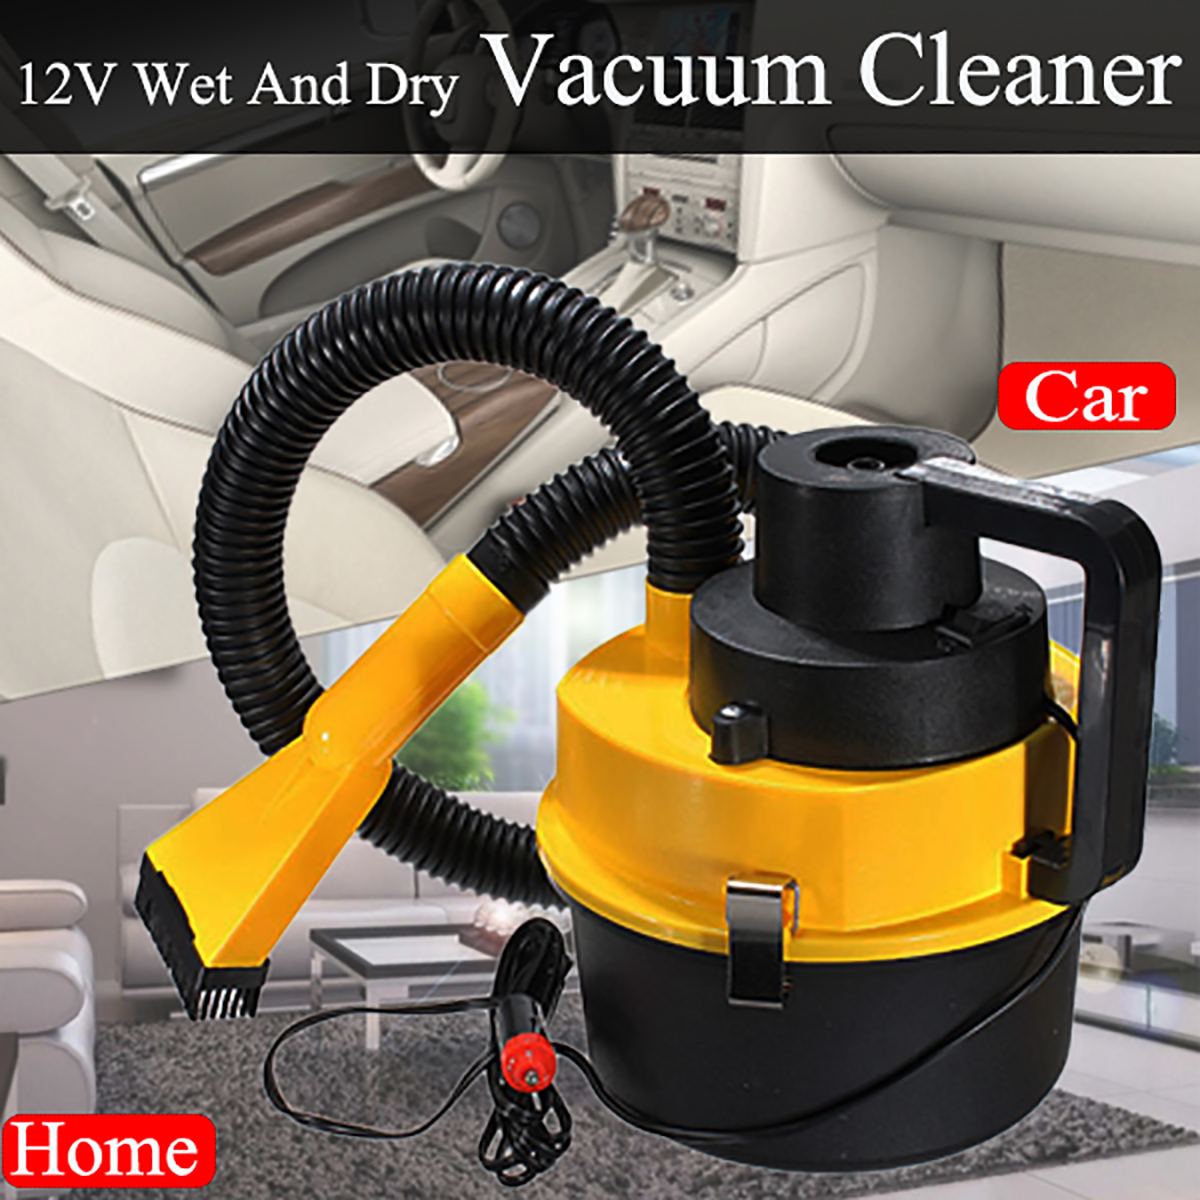 12V Portable Hand Held Vacuum Cleaner Wet Dry Car Shop Wall Mount Garage Blower Vac US by